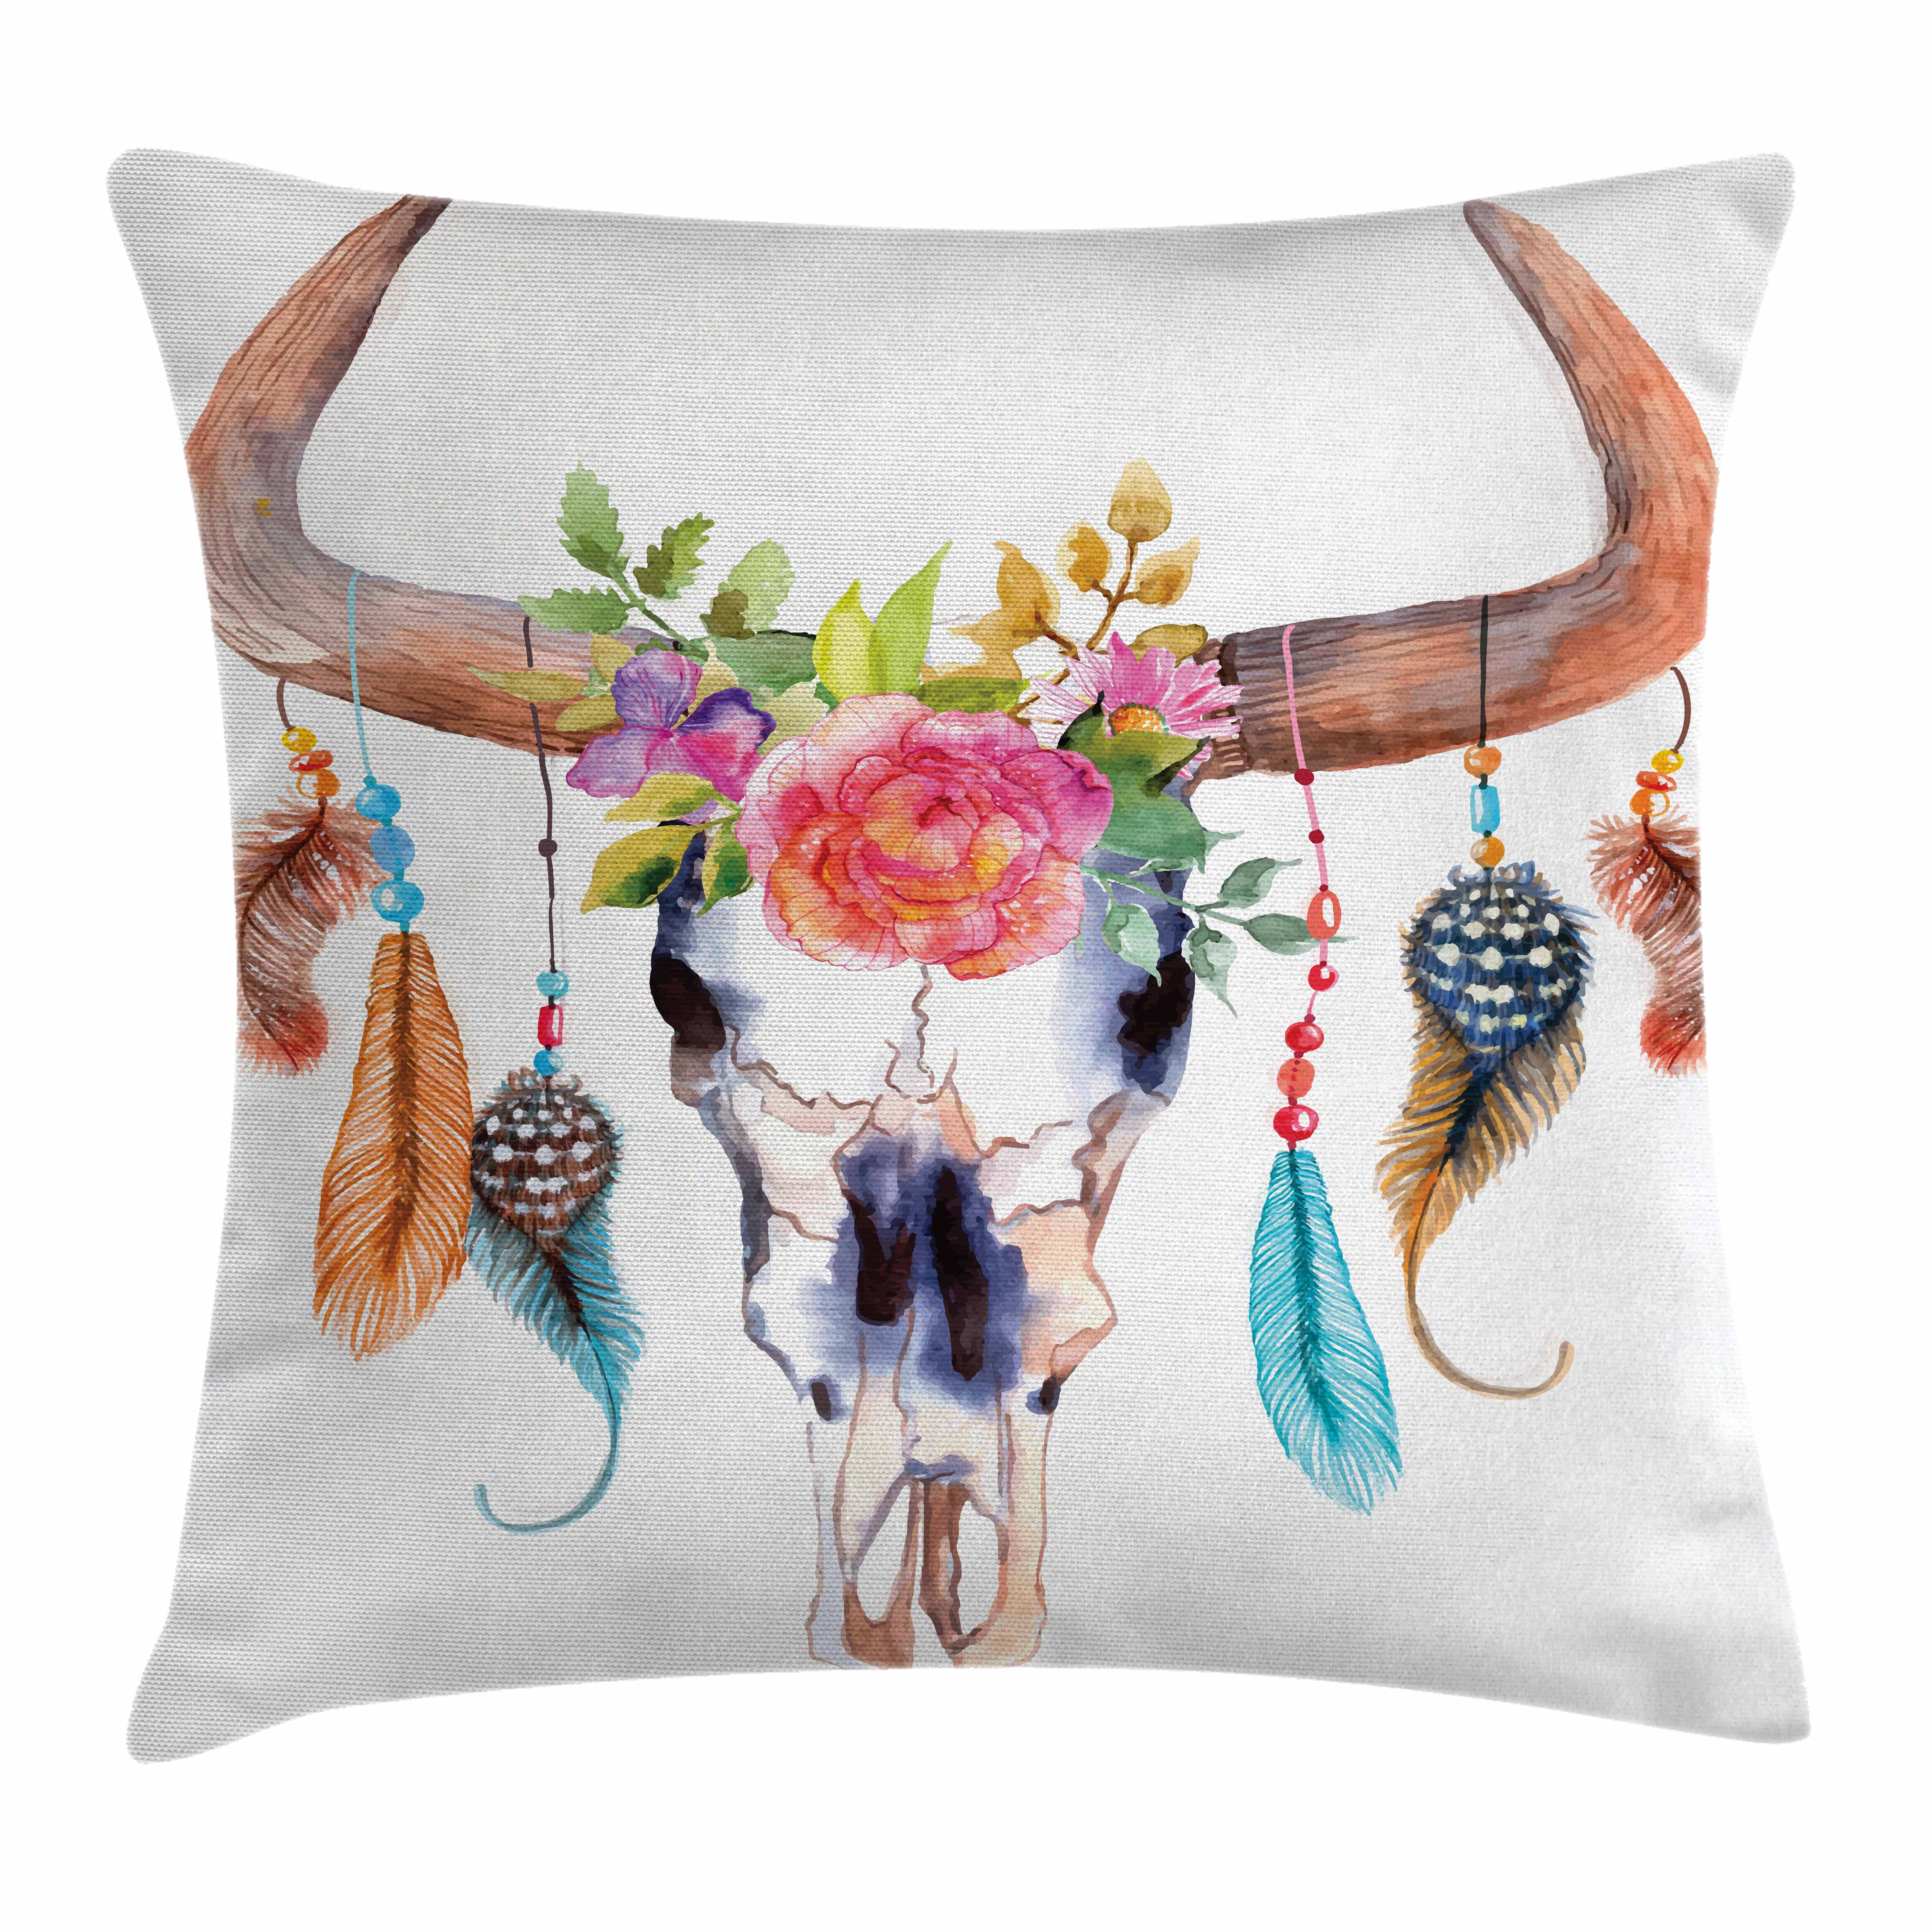 Watercolor Throw Pillow Cushion Cover, Bull Skull with Hanging Flower Feathers Ethnic Inspired Native American Design, Decorative Square Accent Pillow Case, 16 X 16 Inches, Multicolor, by Ambesonne